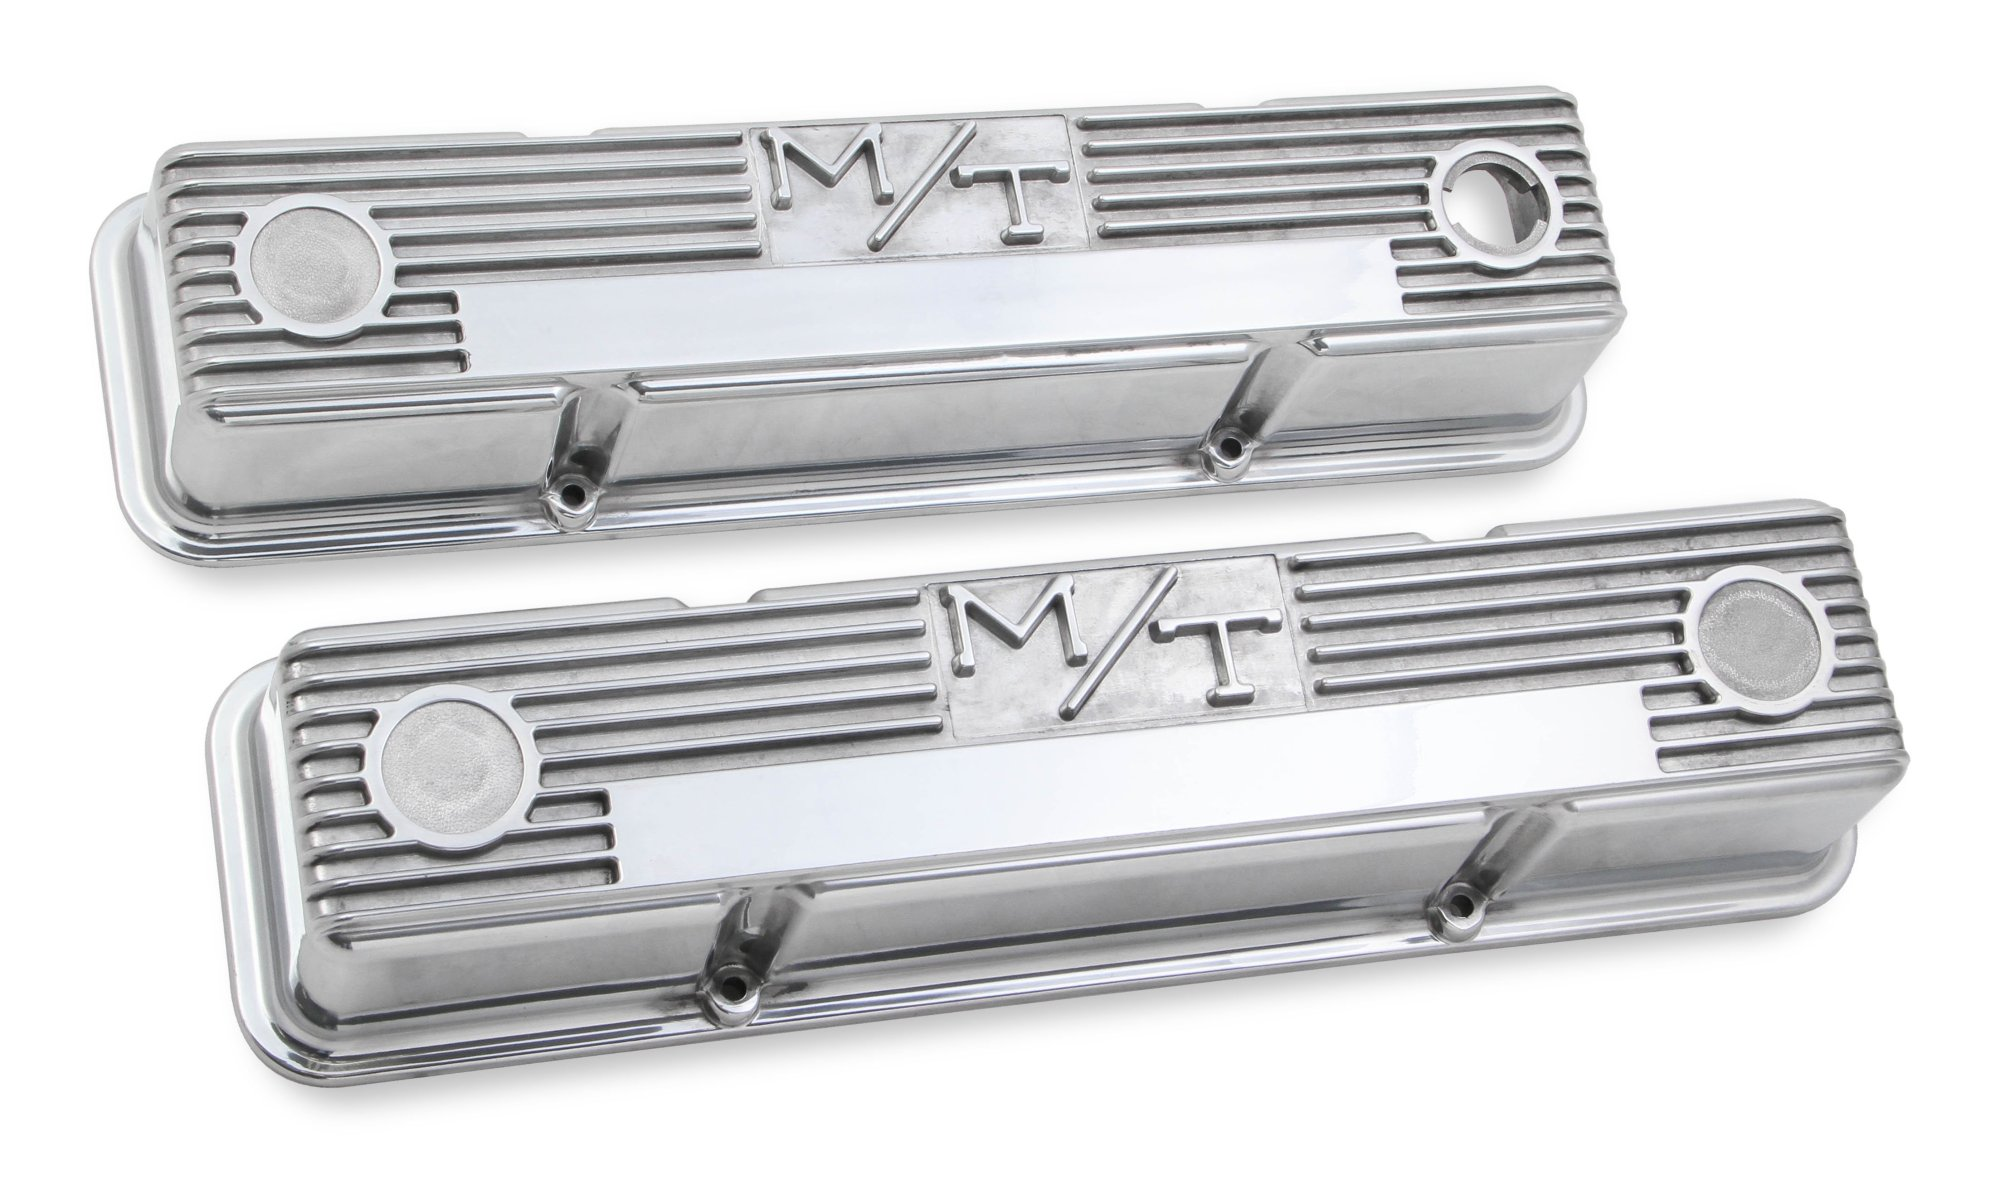 hight resolution of 241 82 m t valve covers for chevy small block engines polished